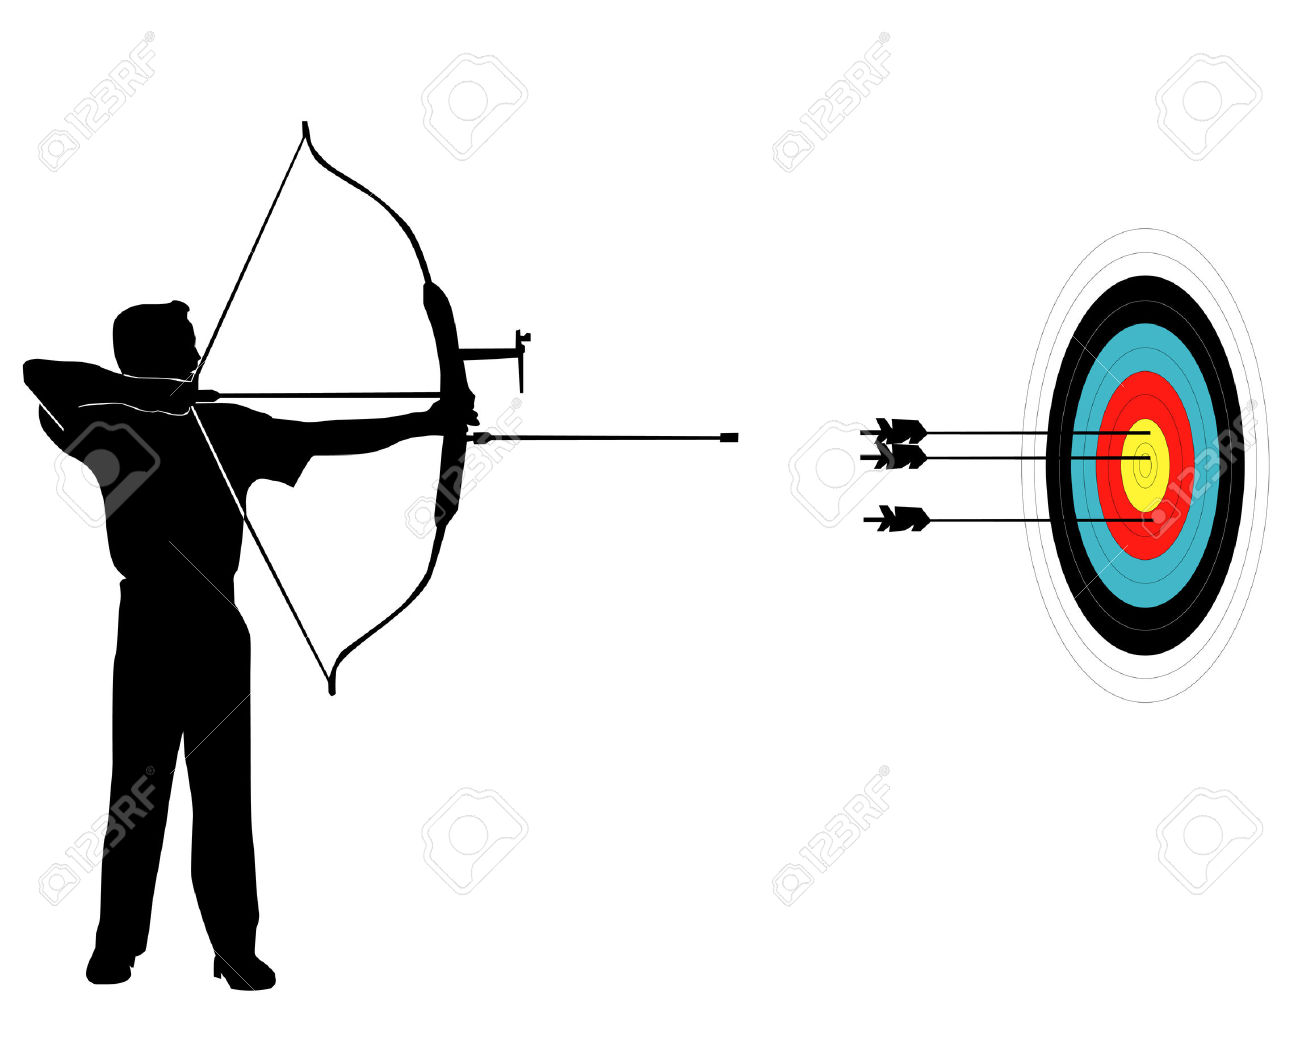 Sports Marksman From Onions On A Target On A White Background.